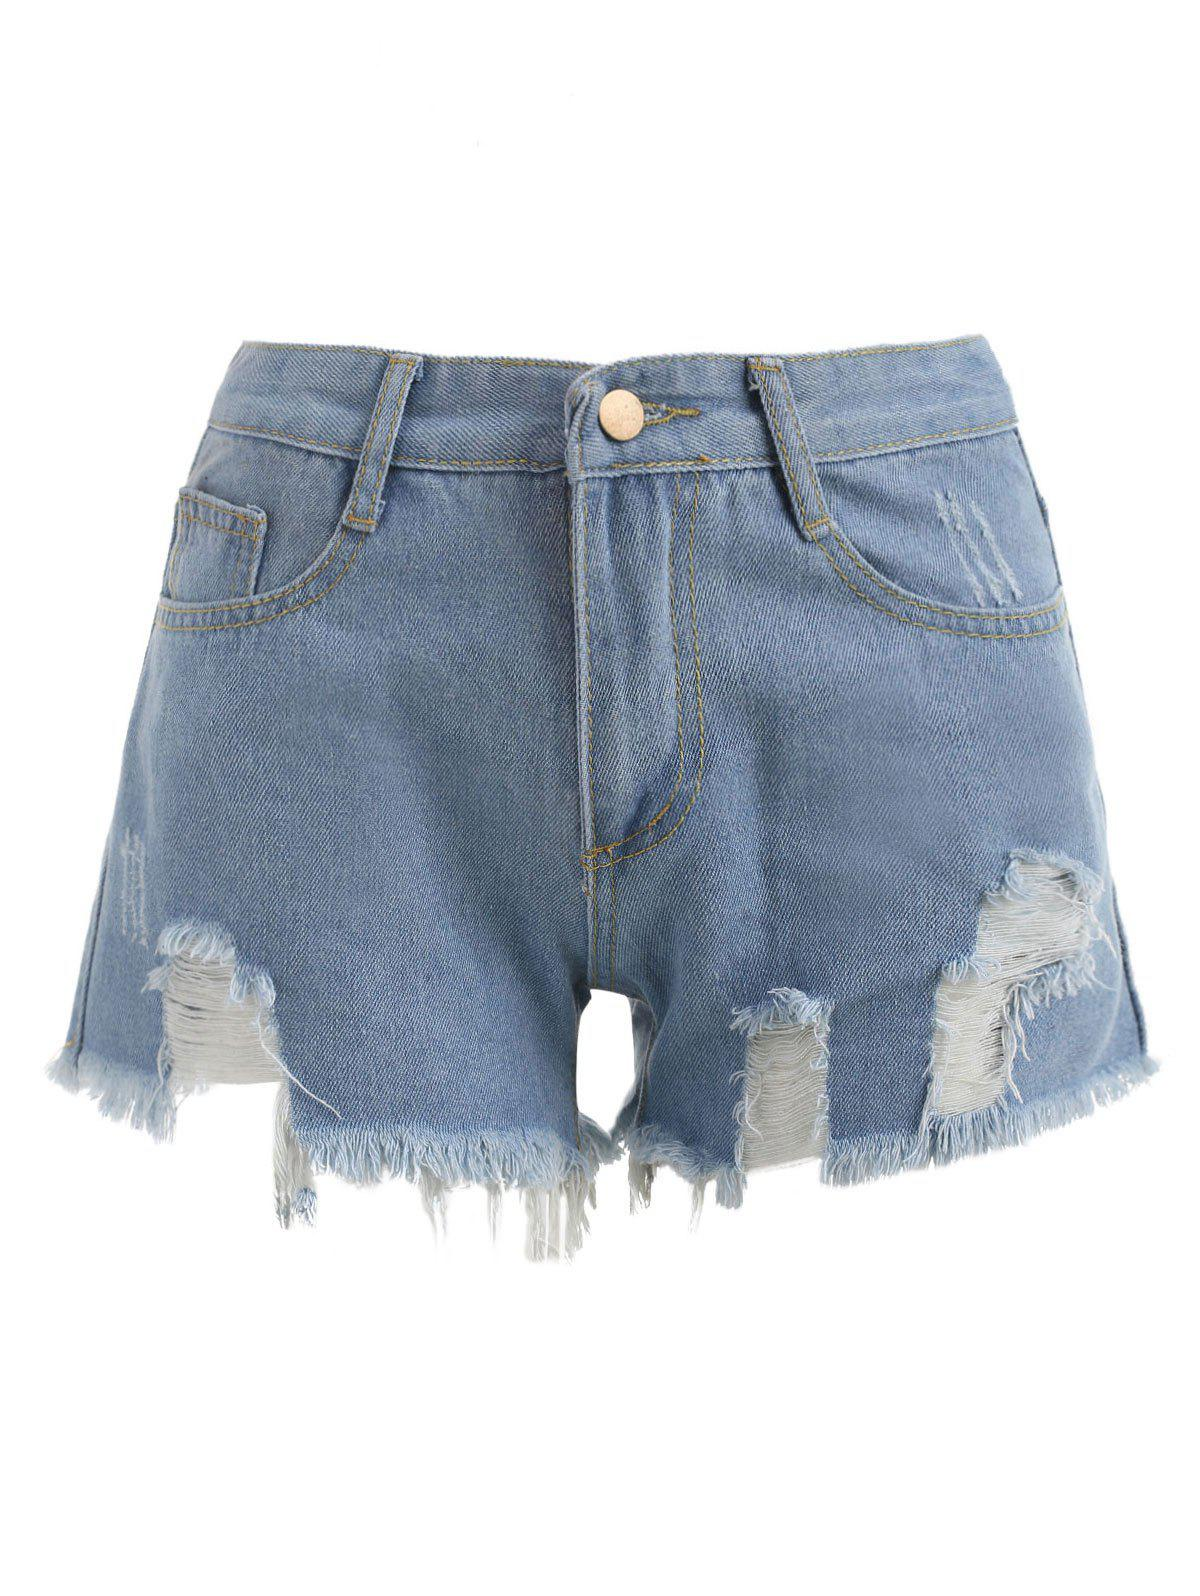 Mid Waisted Distressed Shorts - DENIM BLUE L